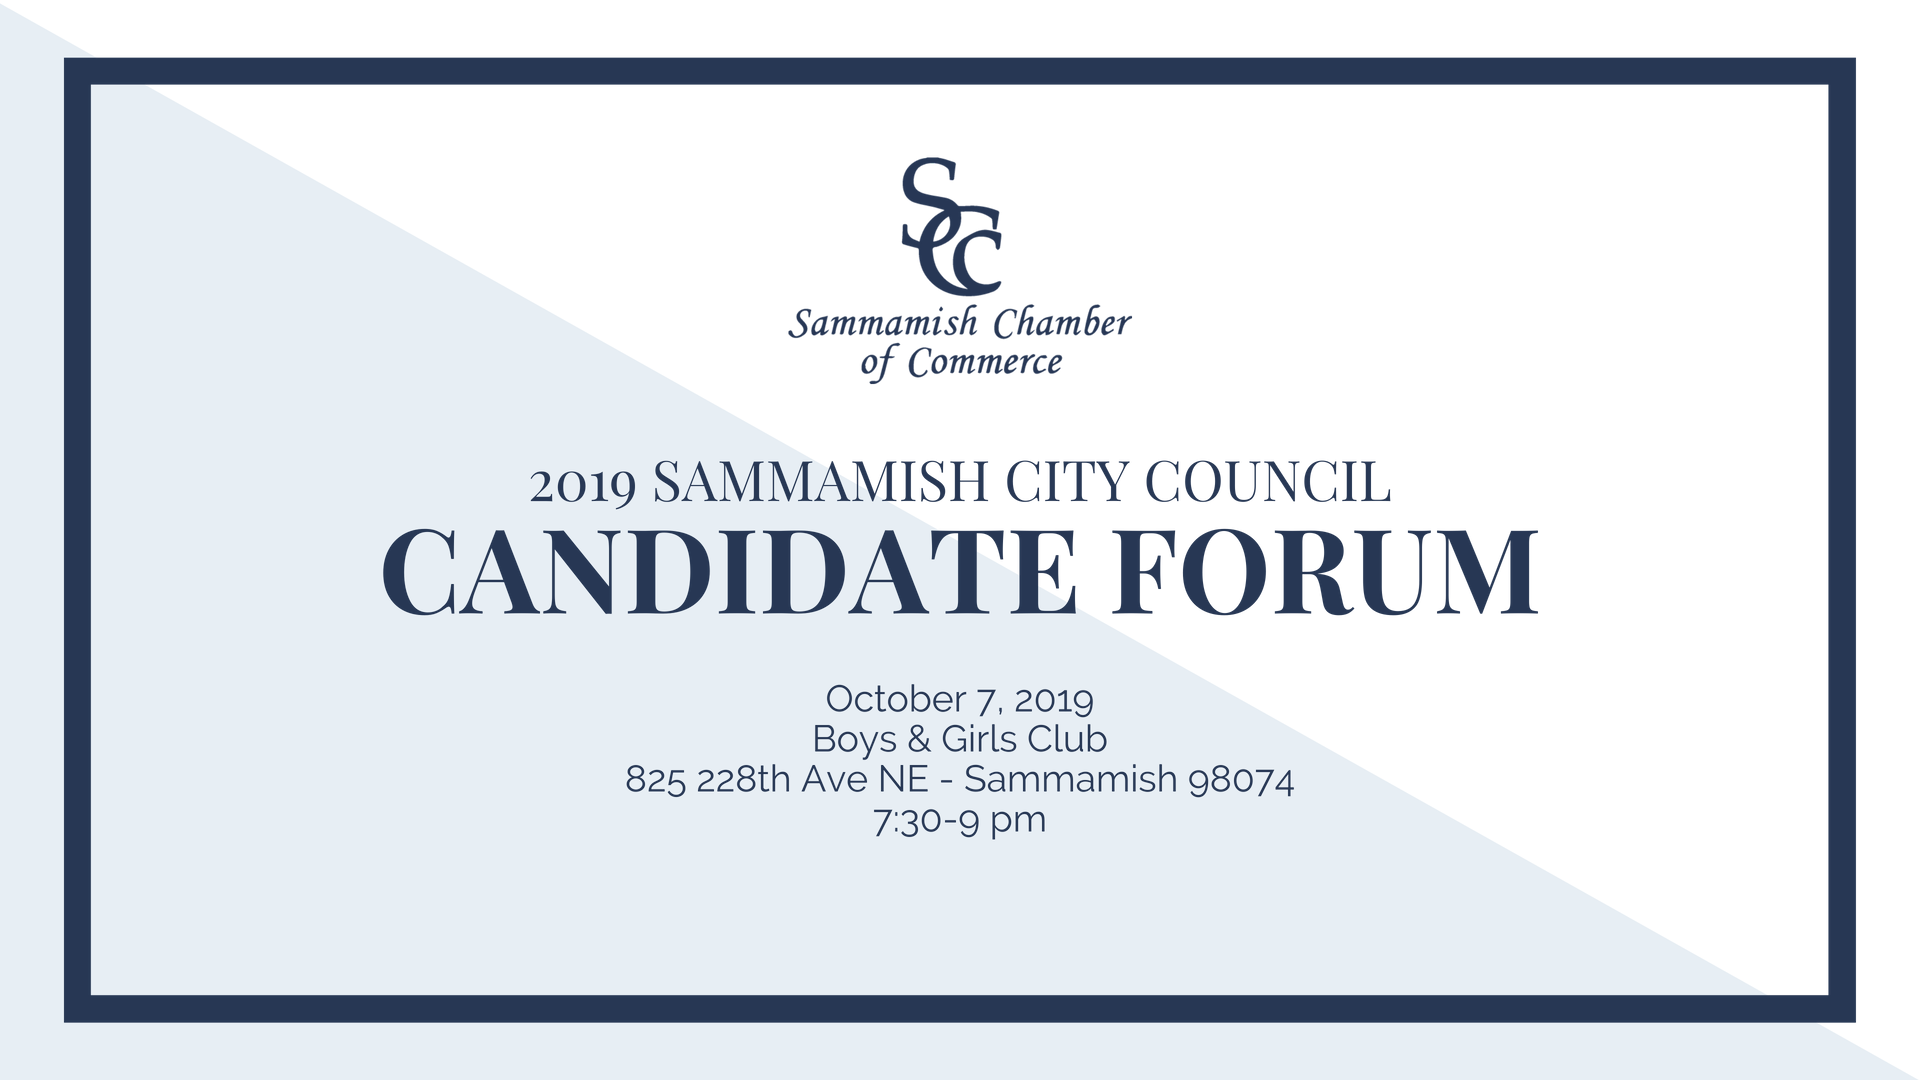 2019 Sammamish City Council Candidate Forum